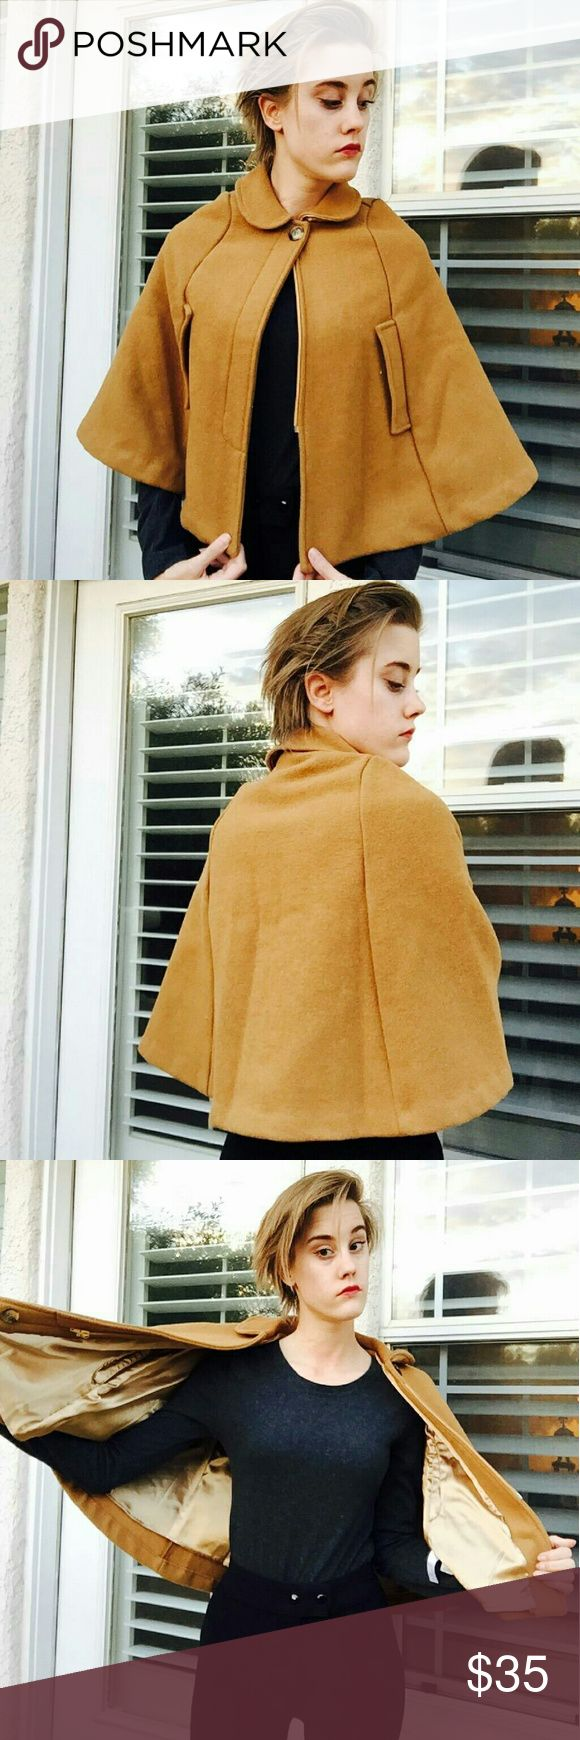 Wool Cape. American Apparel Wool Cape. This is actually a kids size, but I liked it enough to wear it as is! Pair with a long sleeve shirt and cute leggings with combat boots and you're good to go! Rare and discontinued. American Apparel  Jackets & Coats Capes